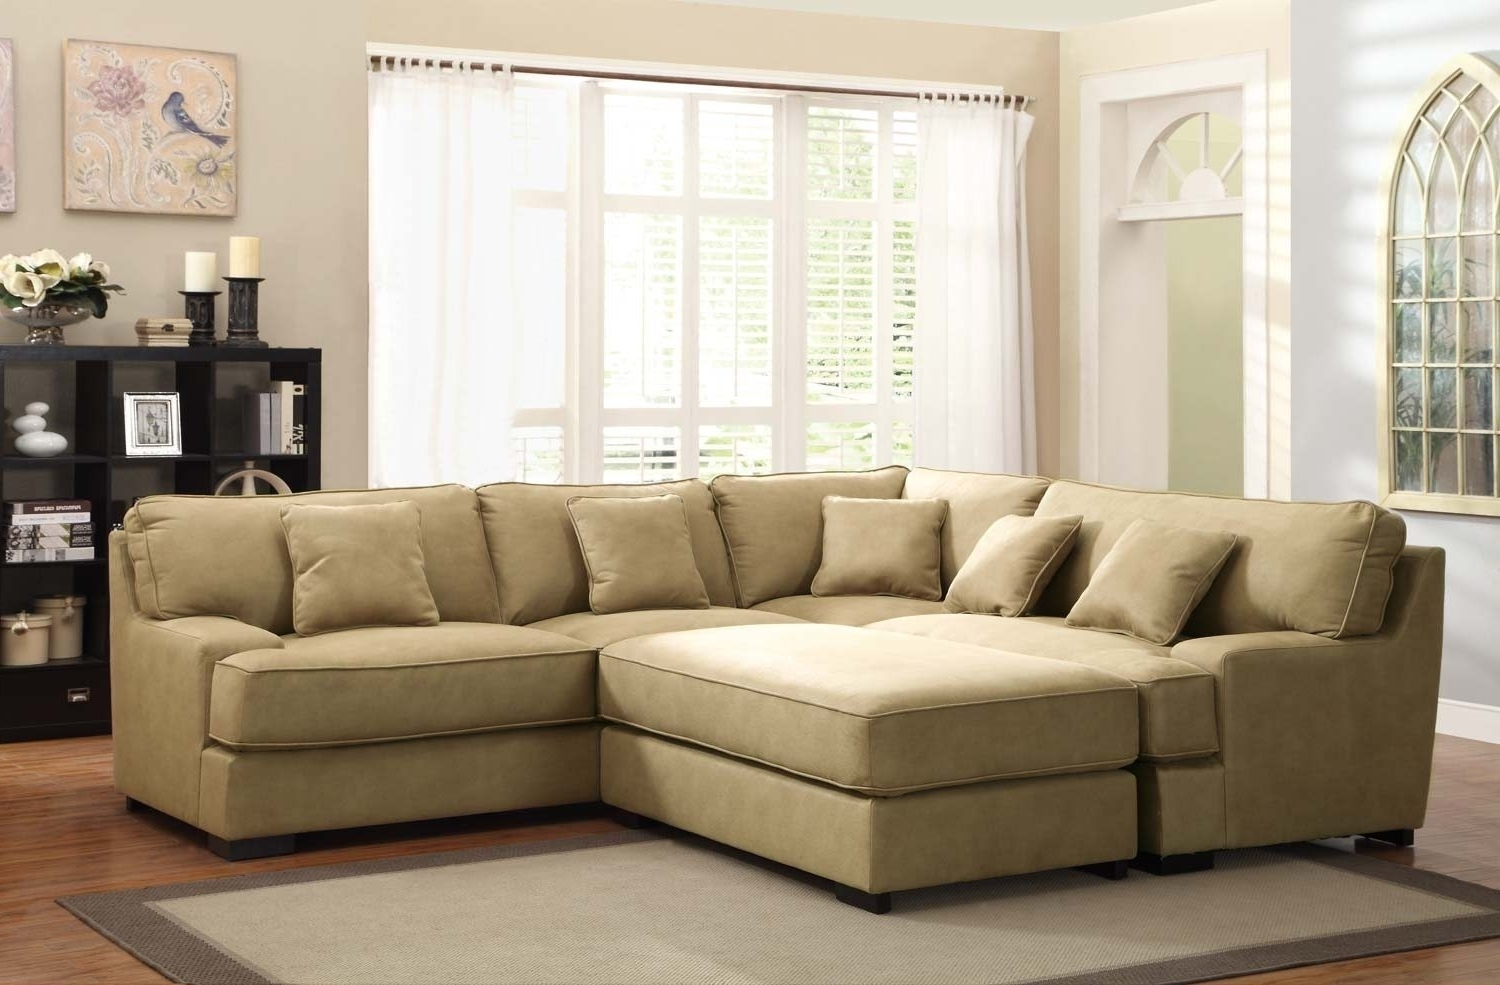 Current Sectionals With Oversized Ottoman Inside Sofa : Modern Oversized Sectional Sofa Oversized Sectional Sofas (View 1 of 15)